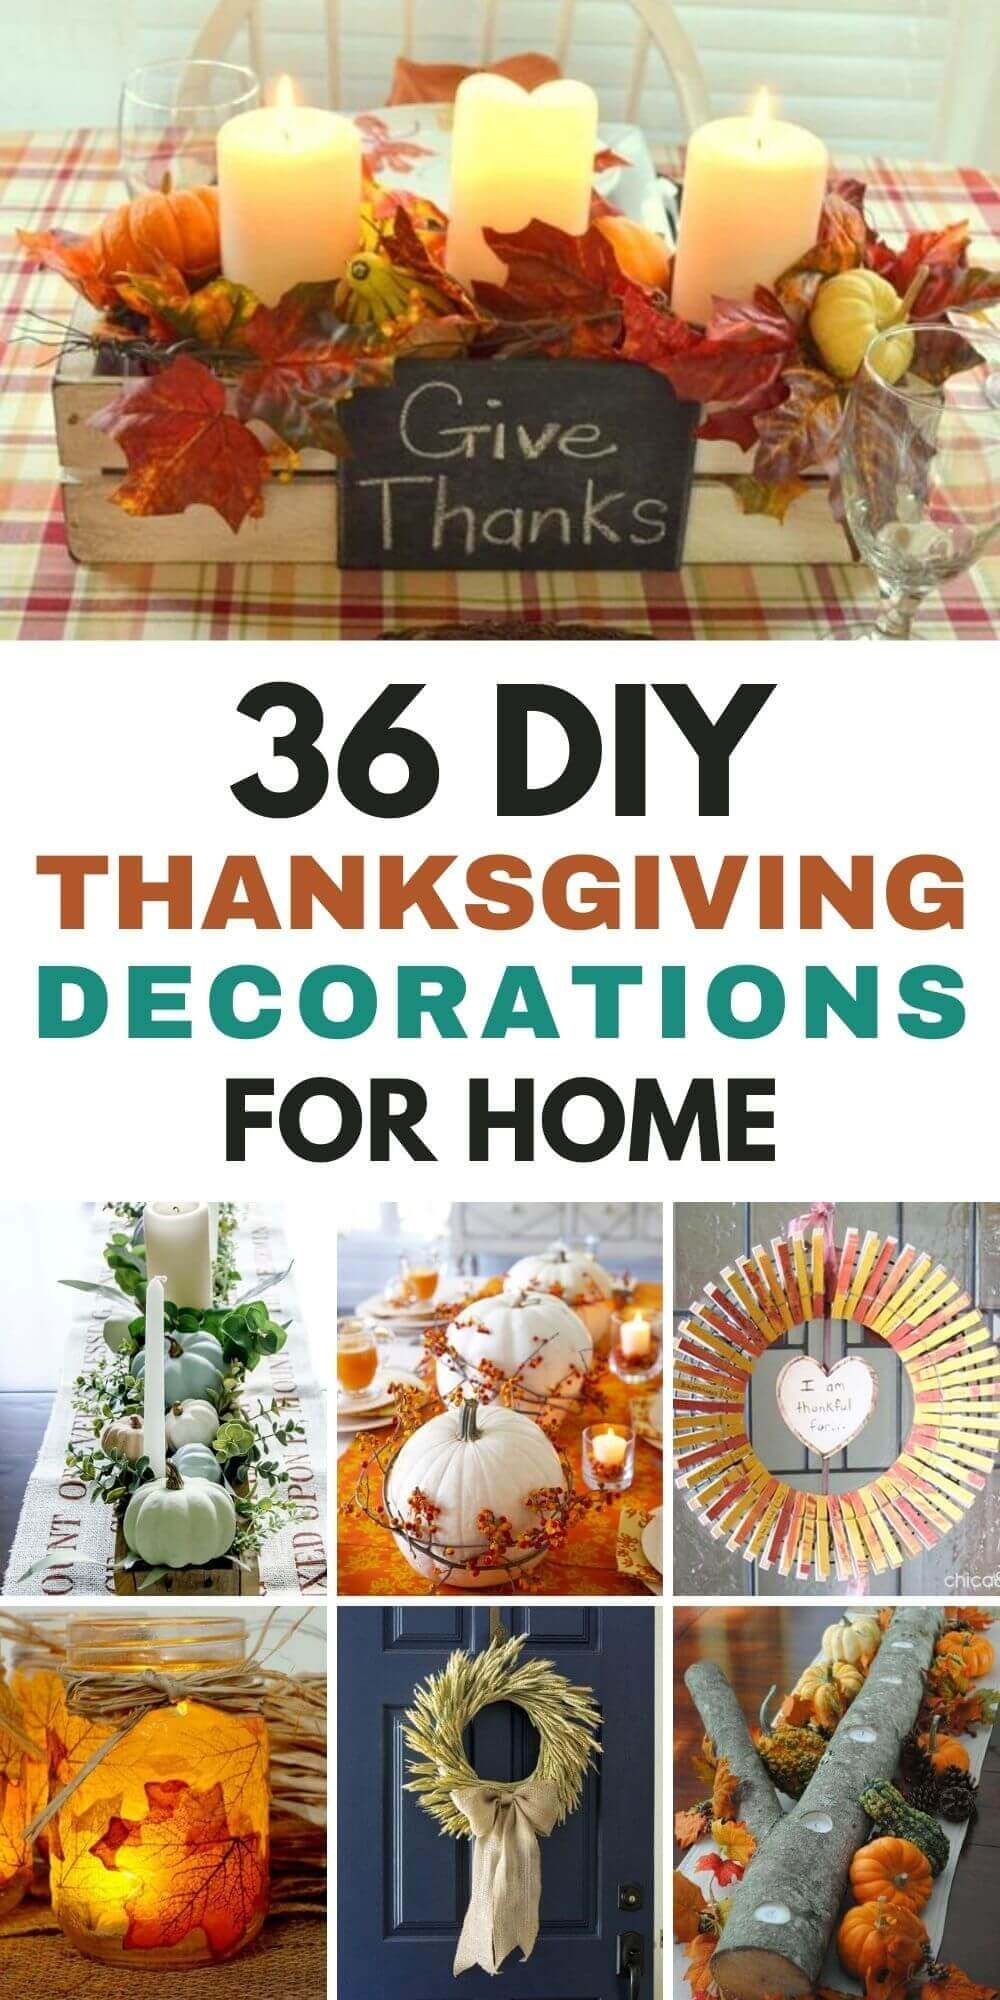 36 DIY Thanksgiving Decorations For Home